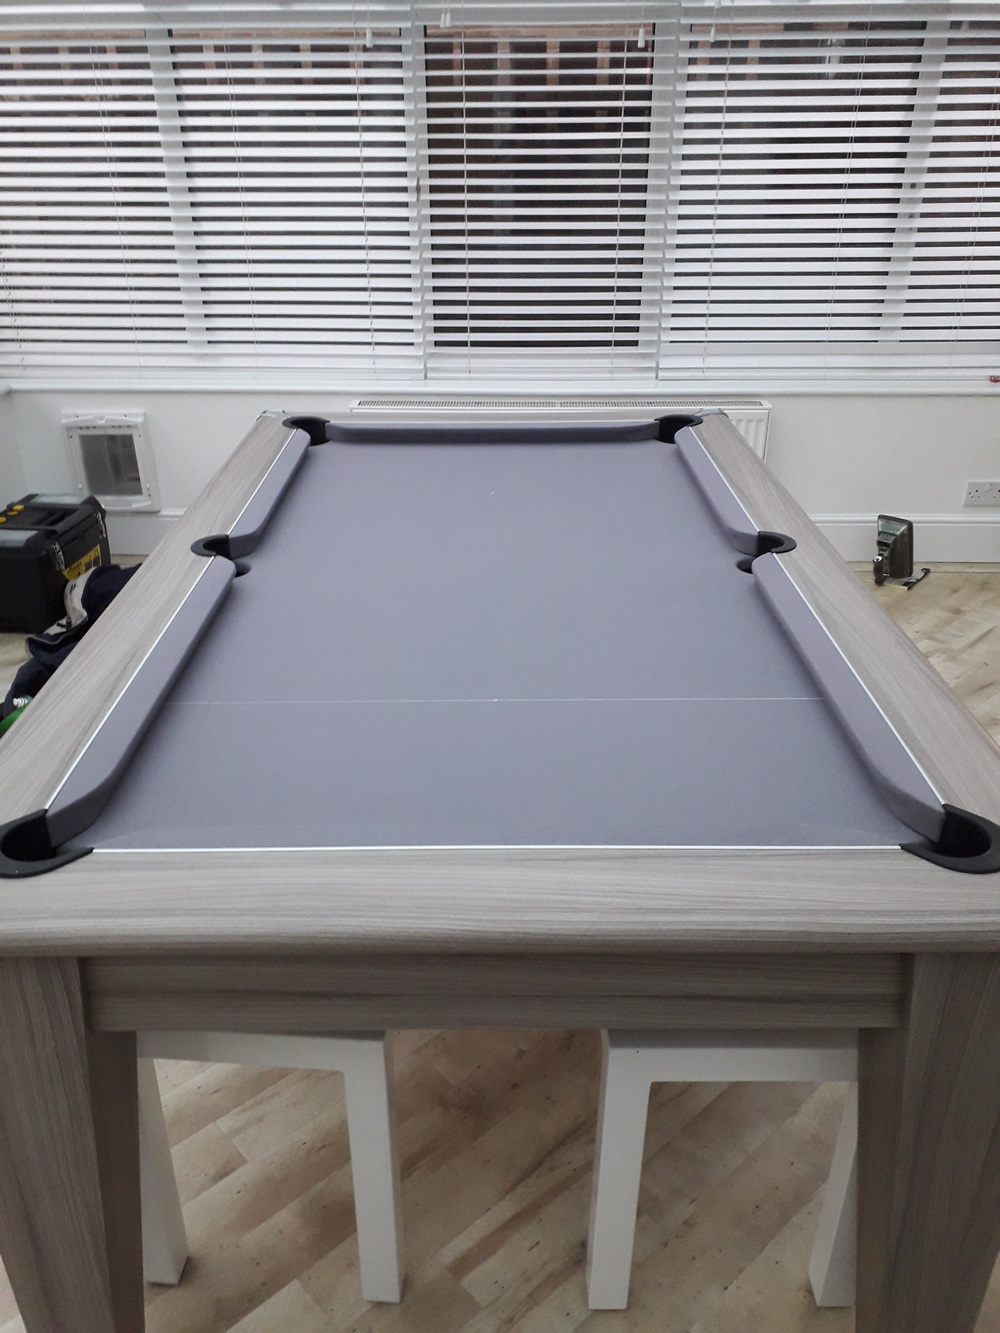 Recover of a Gatley pool dining table in a silver napped wool cloth